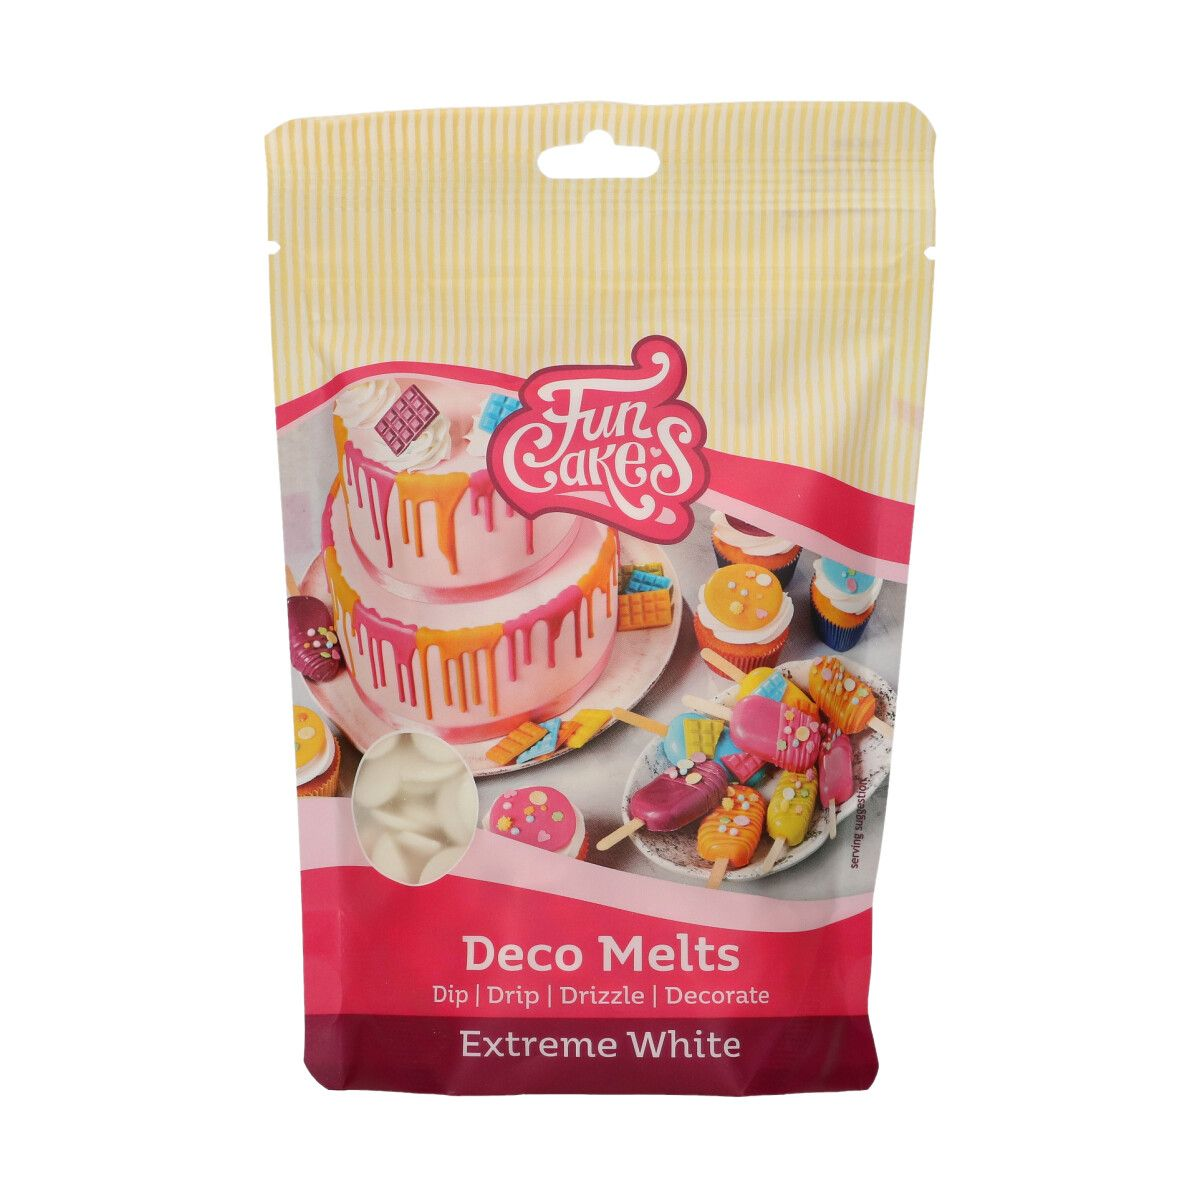 FunCakes Deco Melts -Extreme White- 250g